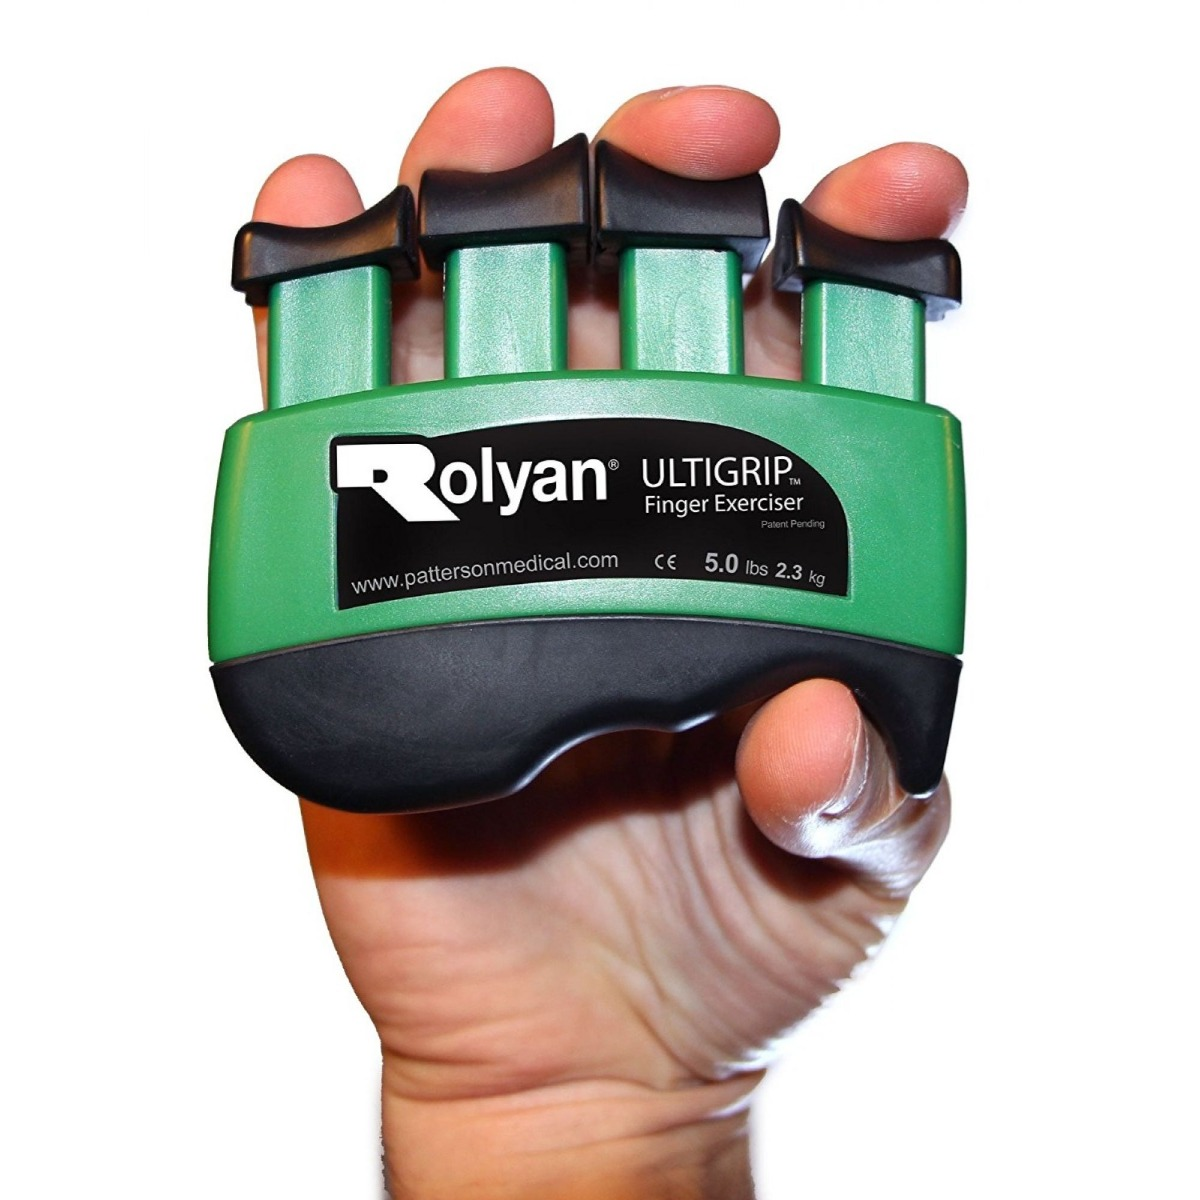 Rolyan Ultigrip Finger Exercisers